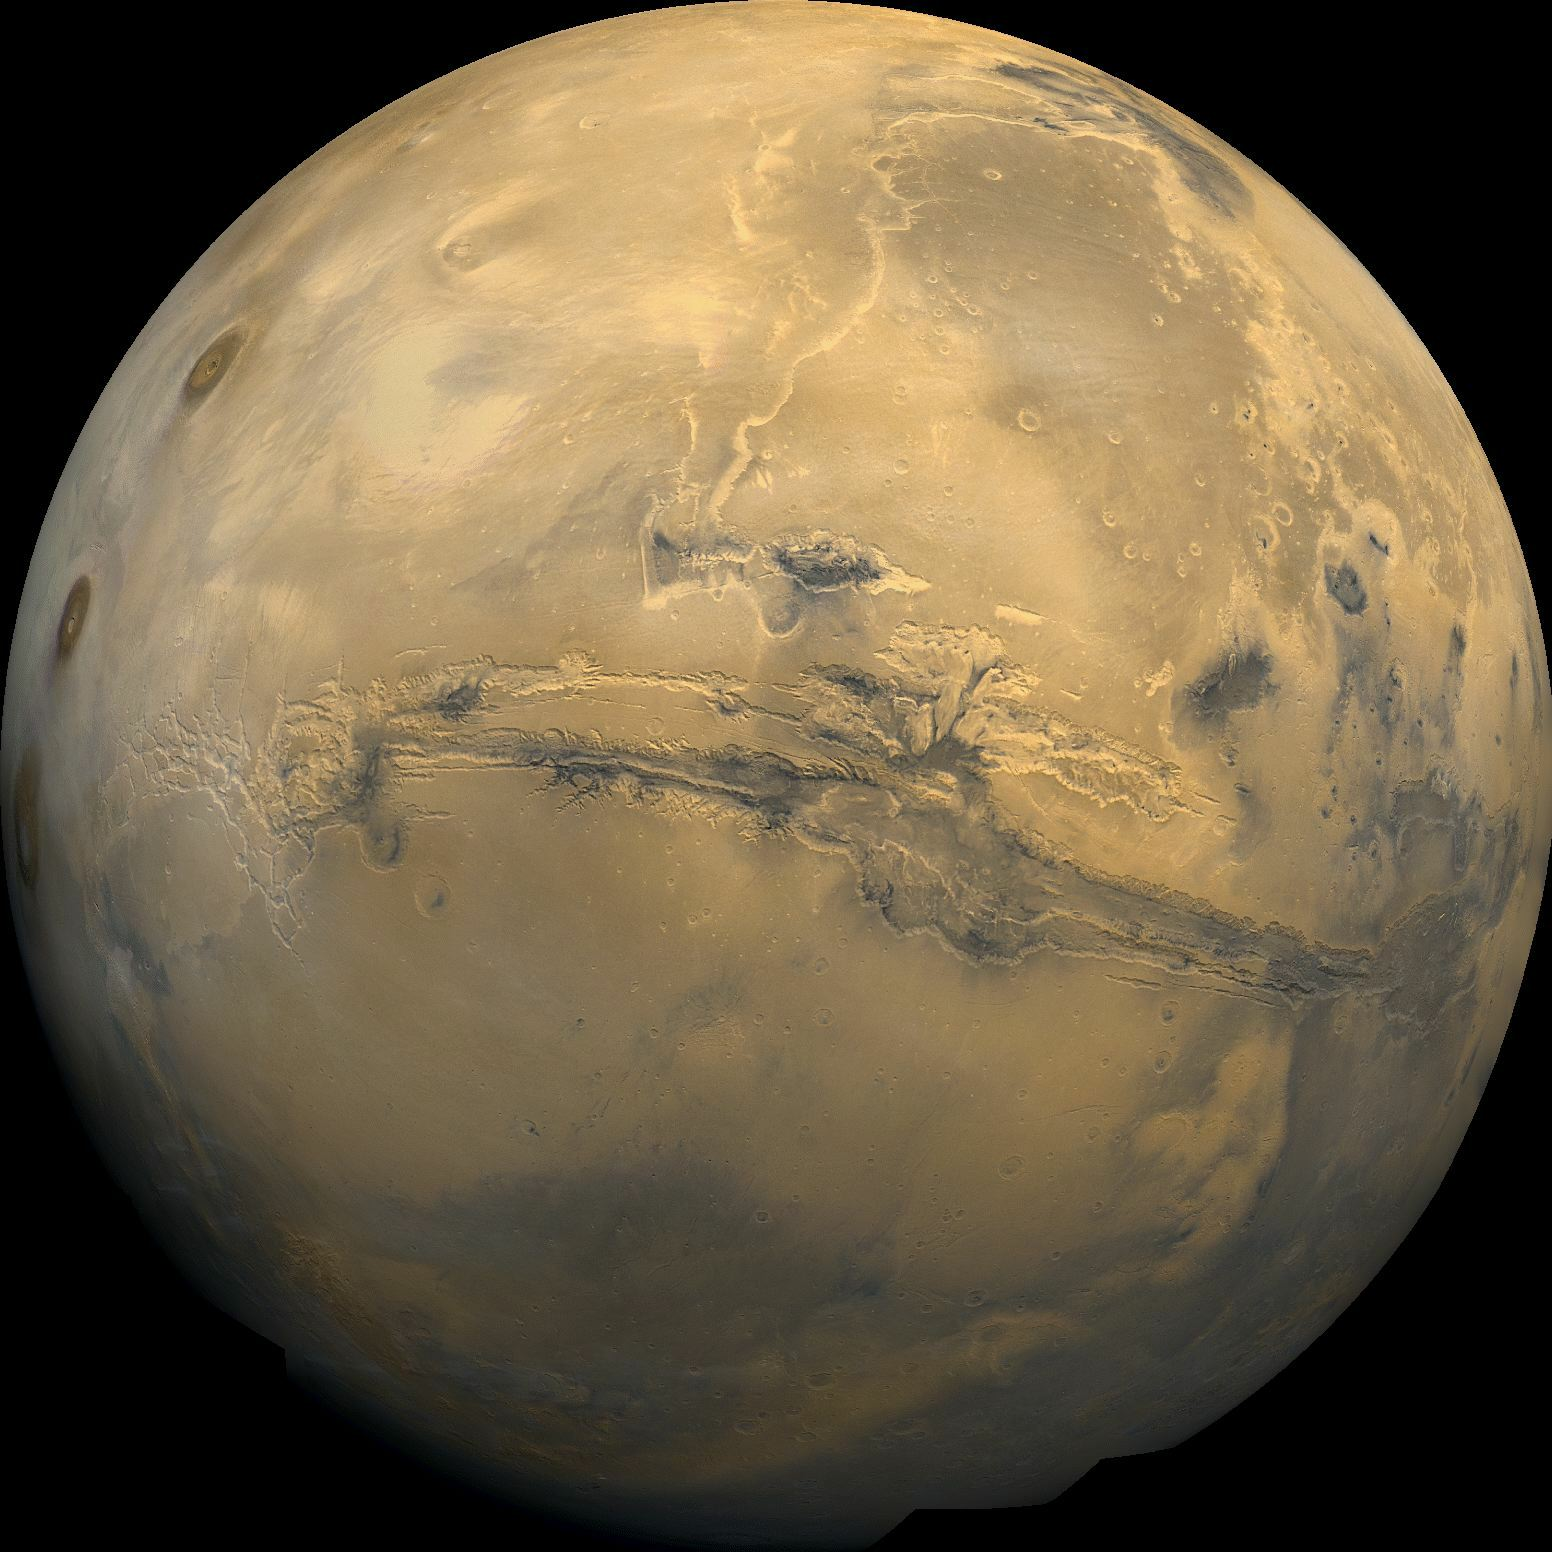 Archivo:Mars Valles Marineris.jpeg